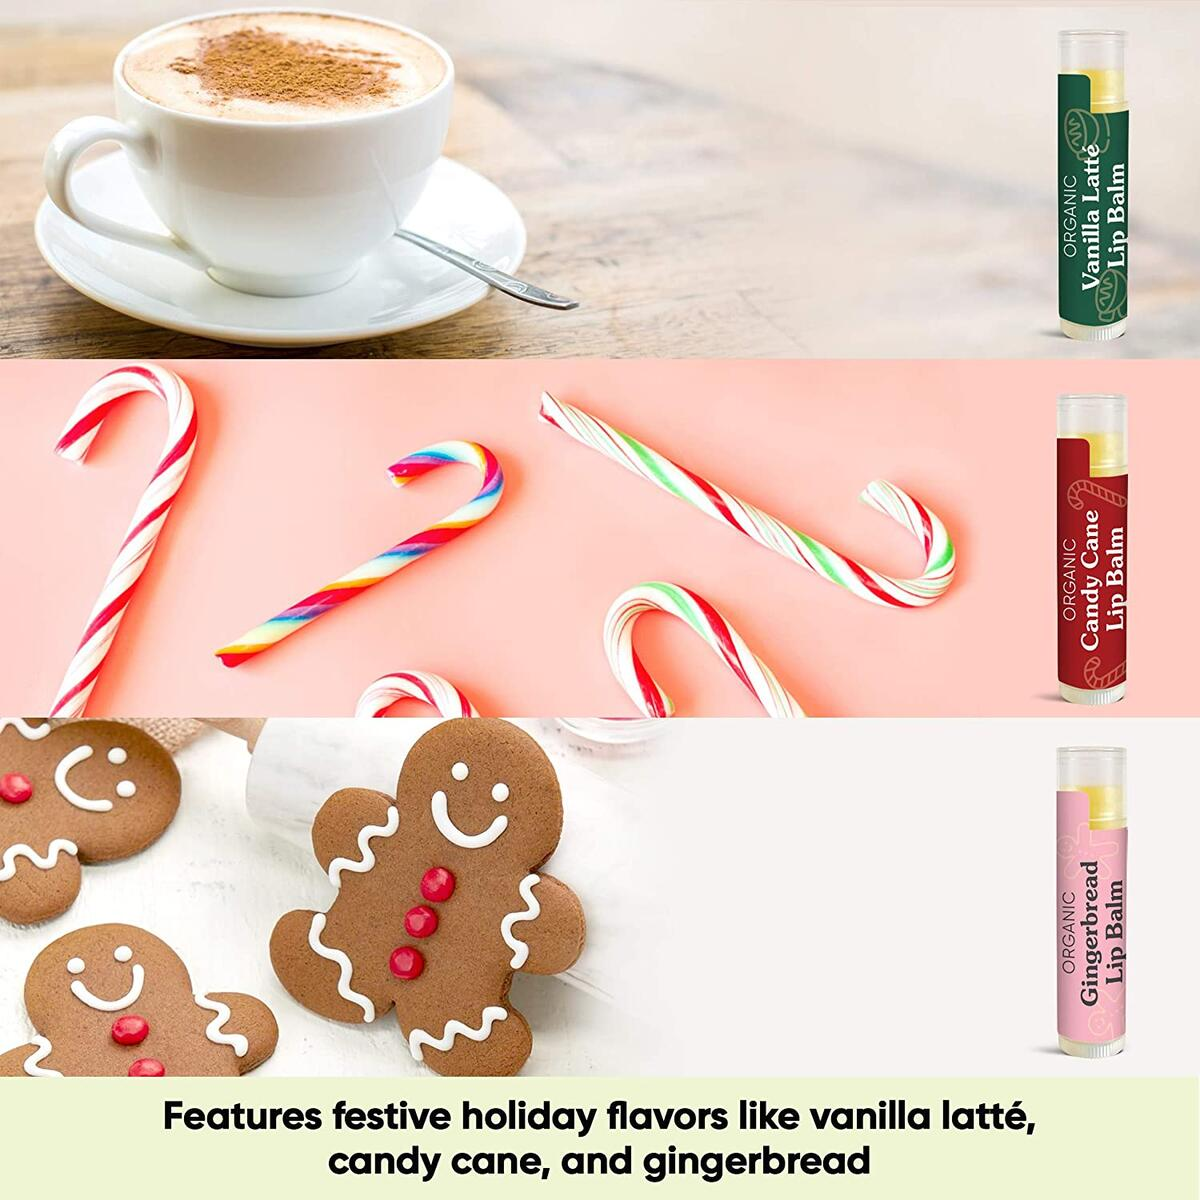 Organic Holiday Lip Balm Trio by Sky Organics (3 Sticks) Holiday Flavors Gift Pack Cruelty-Free Candy Cane, Gingerbread, Vanilla Latté Gift Set Stocking Stuffer Limited Edition Made in USA